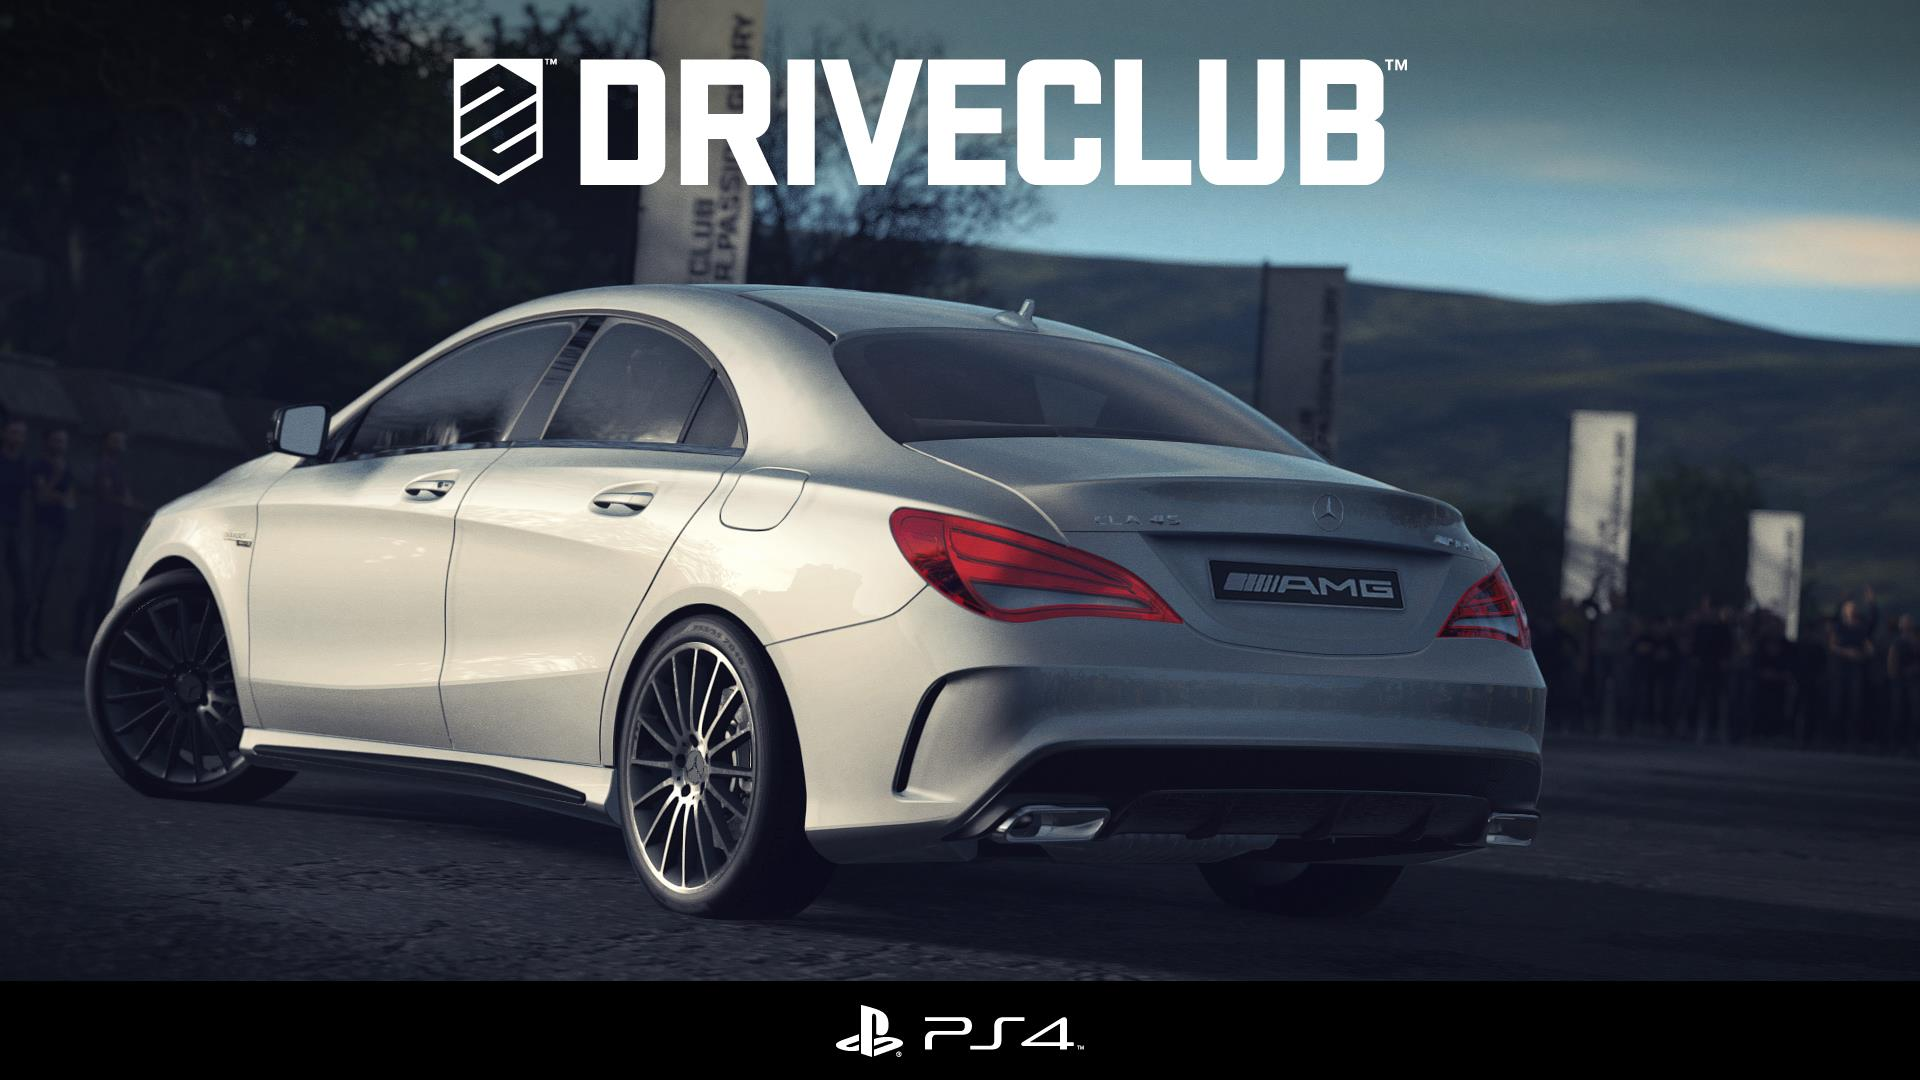 mercedes-benz-cla-45-amg-2013-playstation-4-driveclub-2013-2014